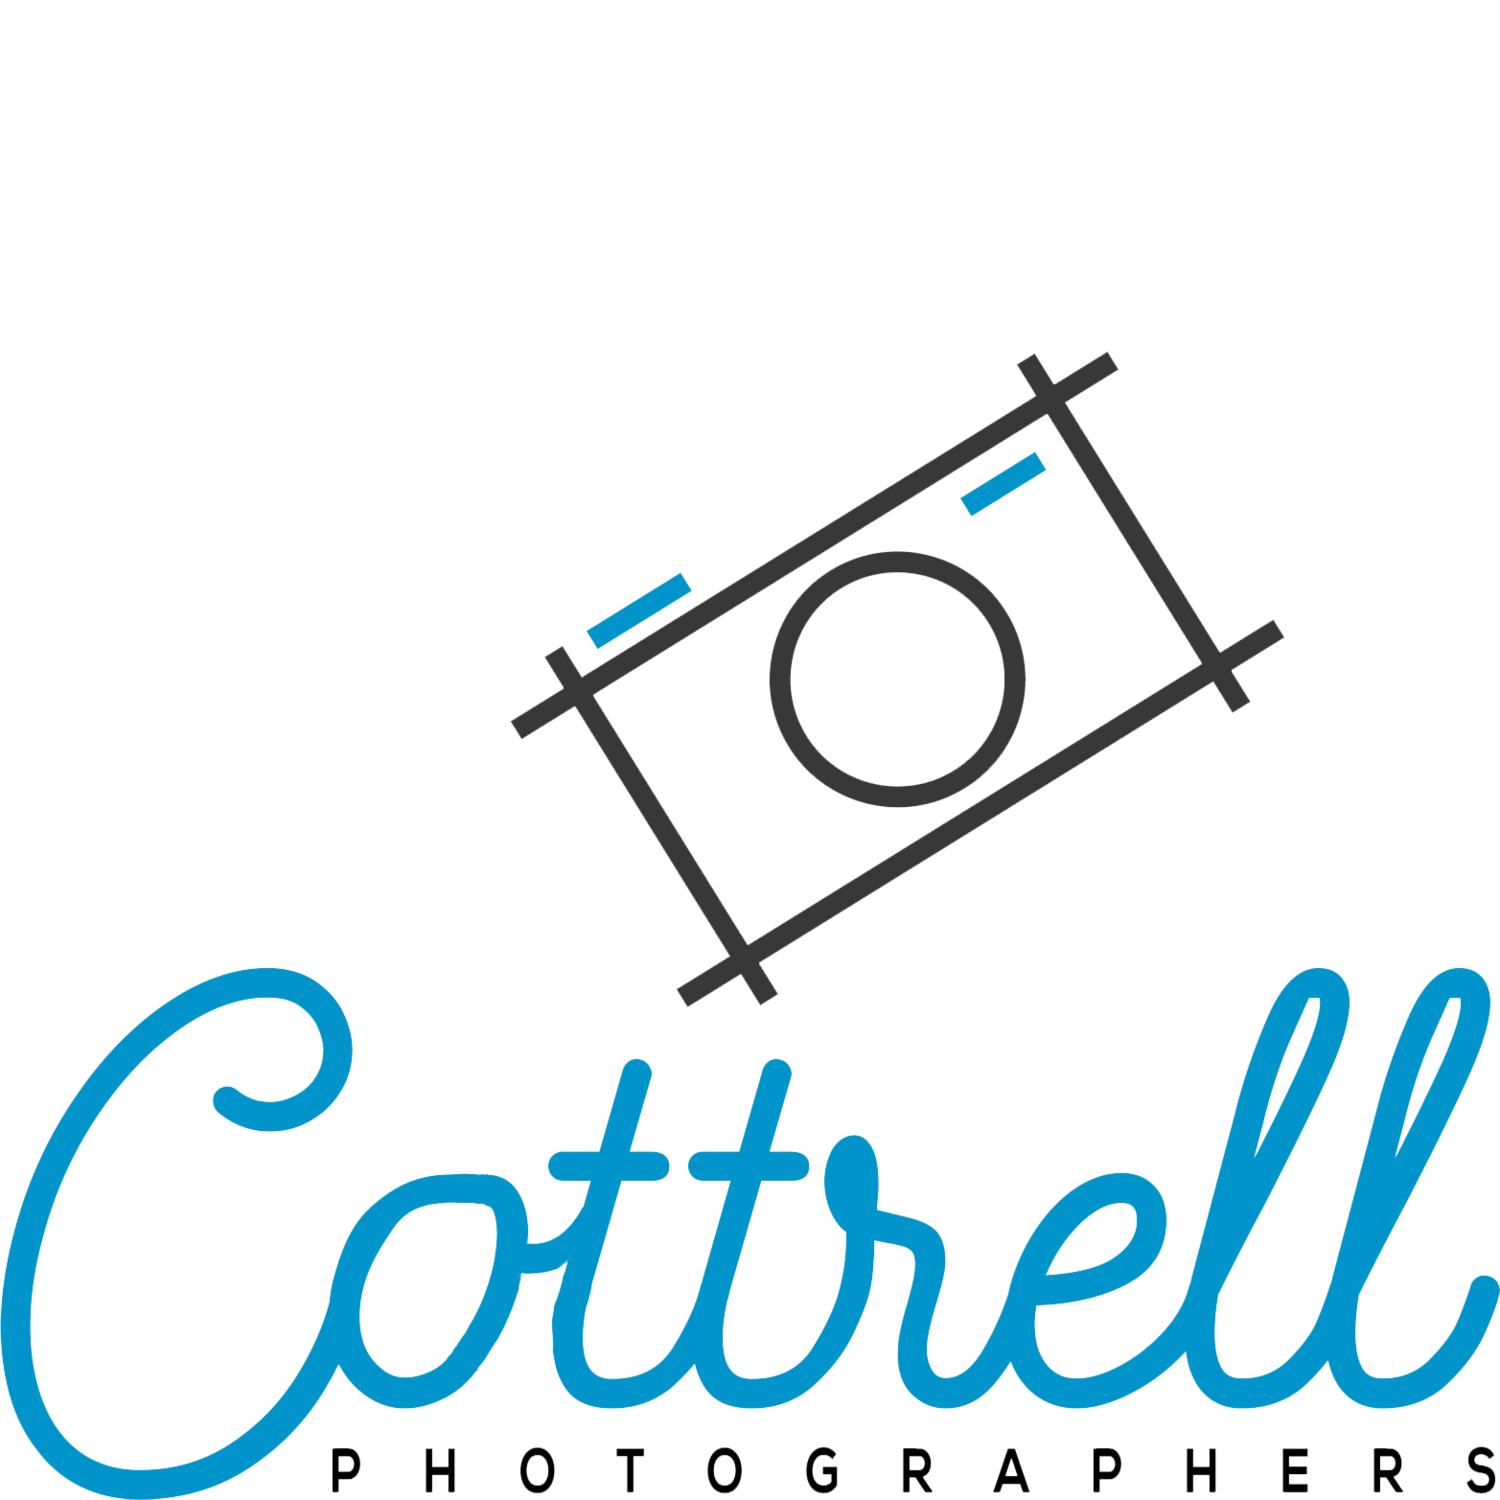 COTTRELL PHOTOGRAPHERS